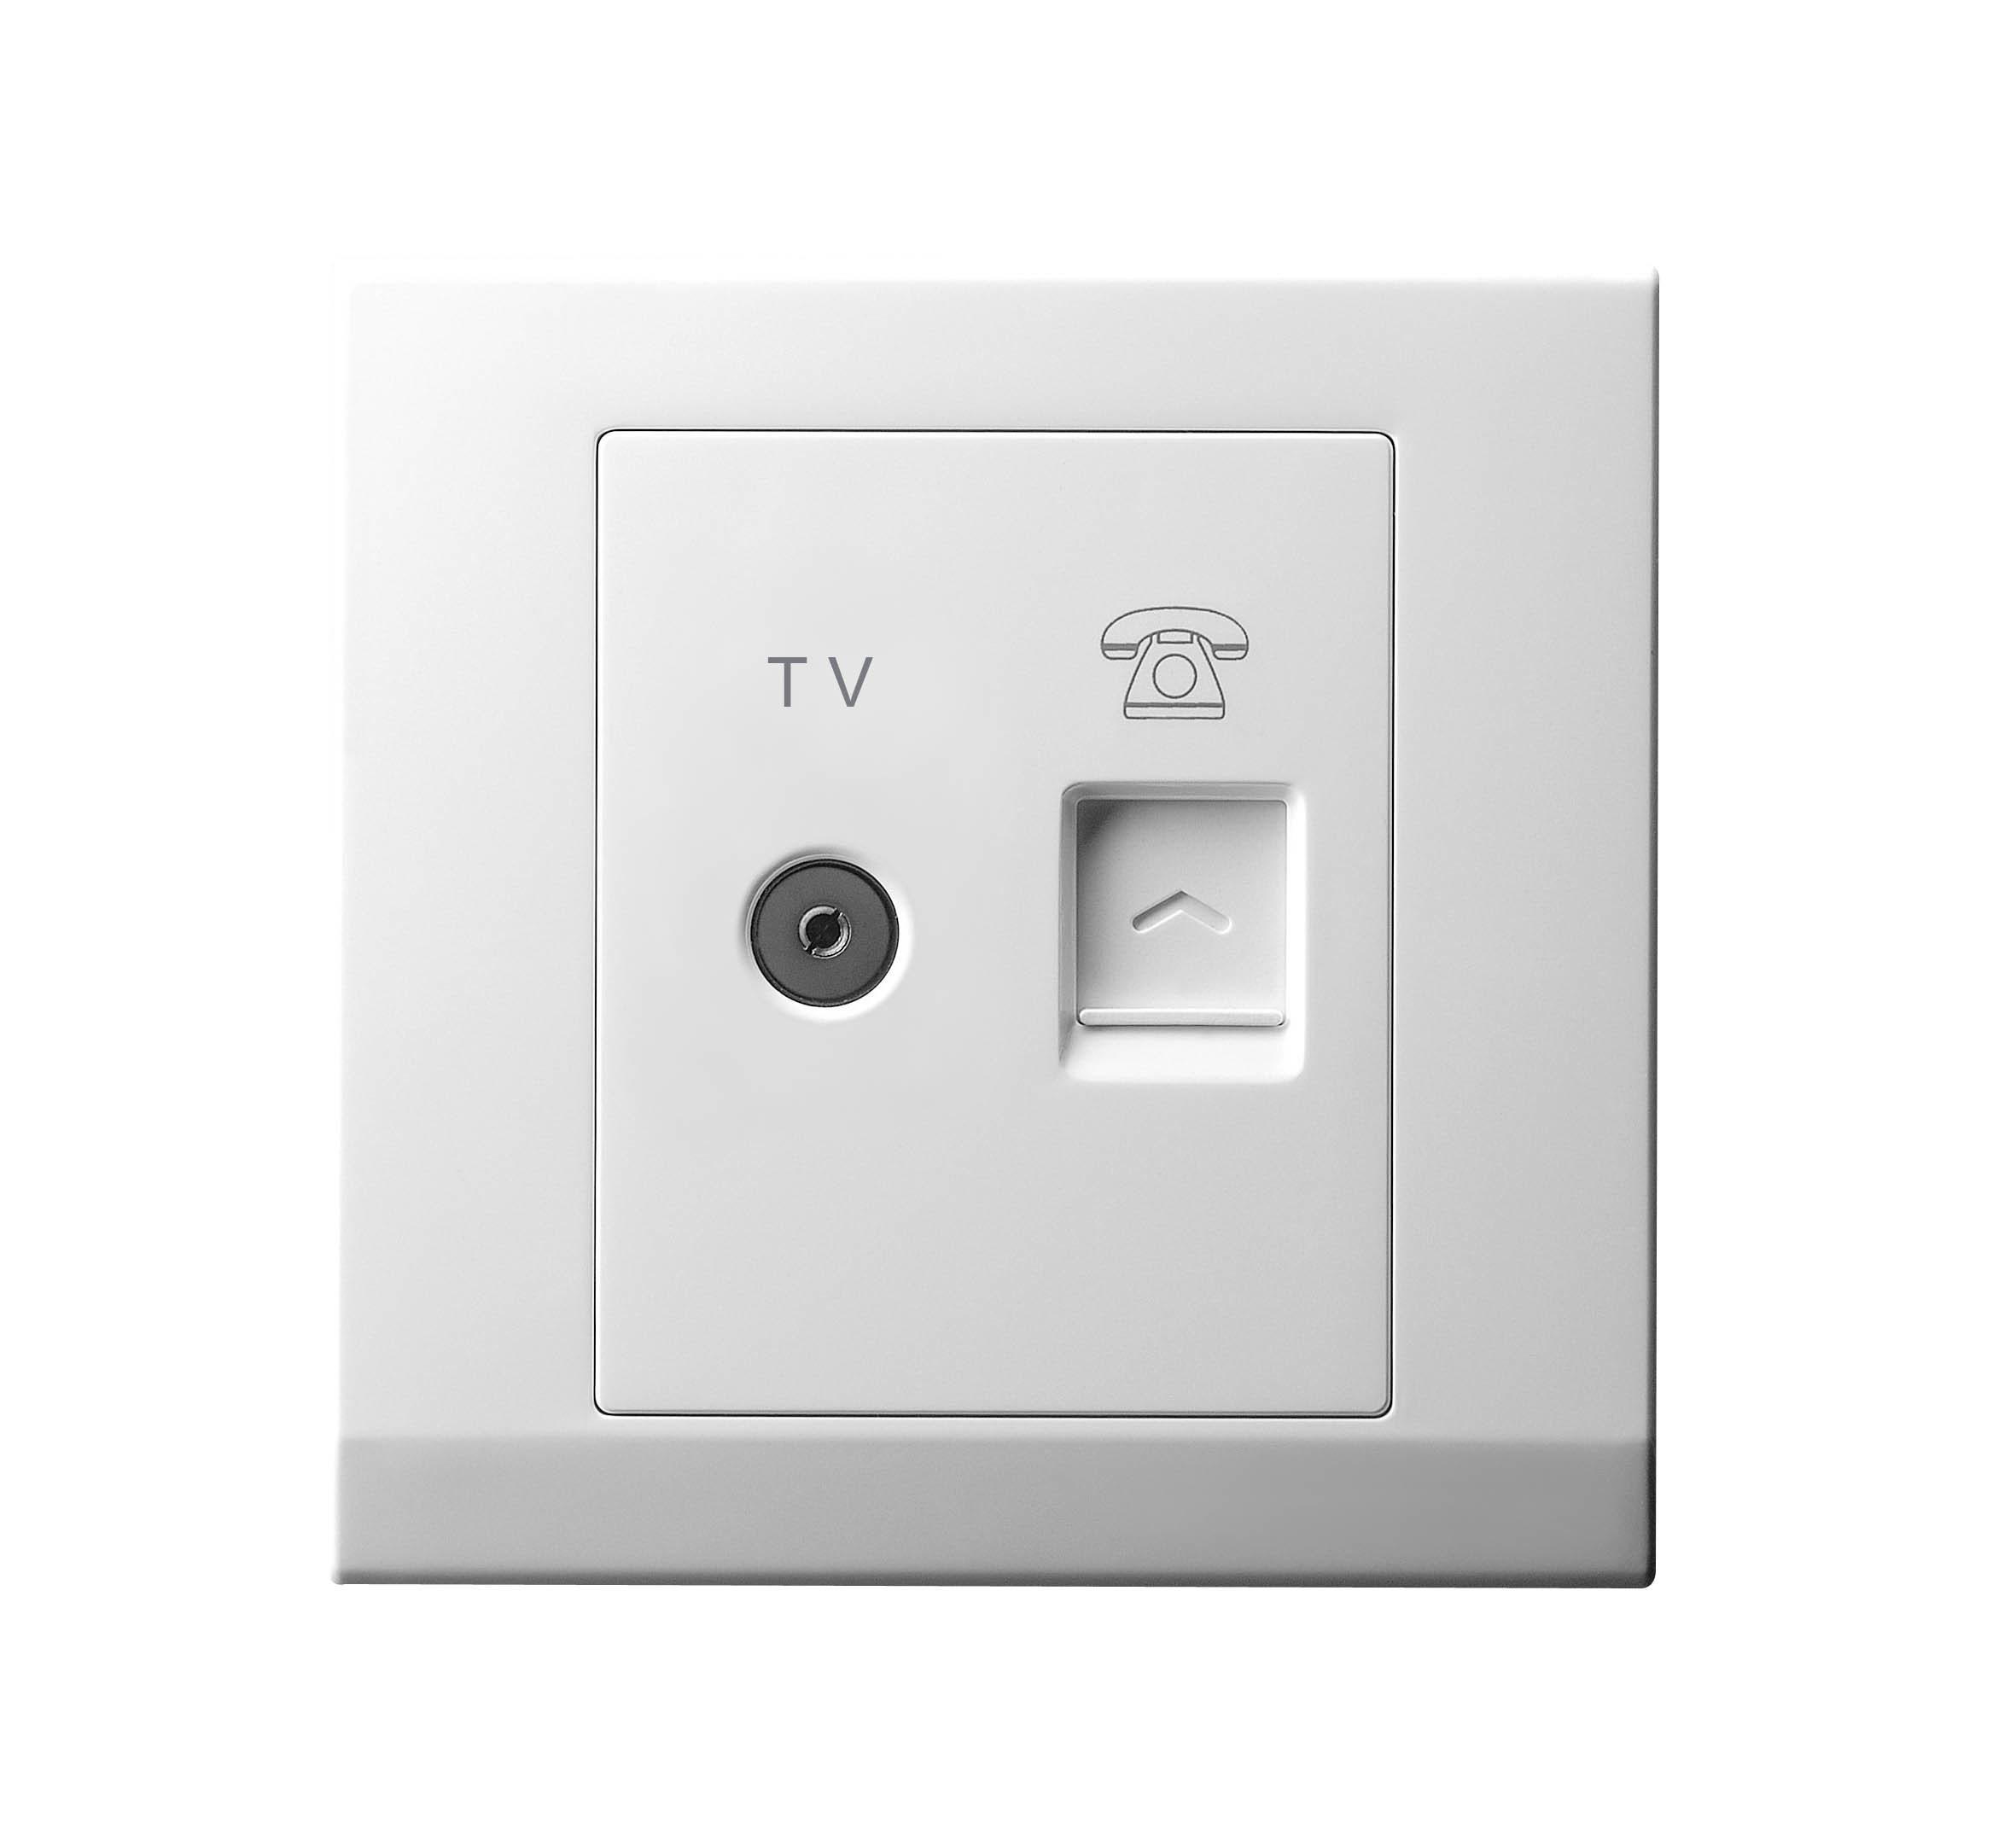 Twin TV & Rj11 Telephone Outlet